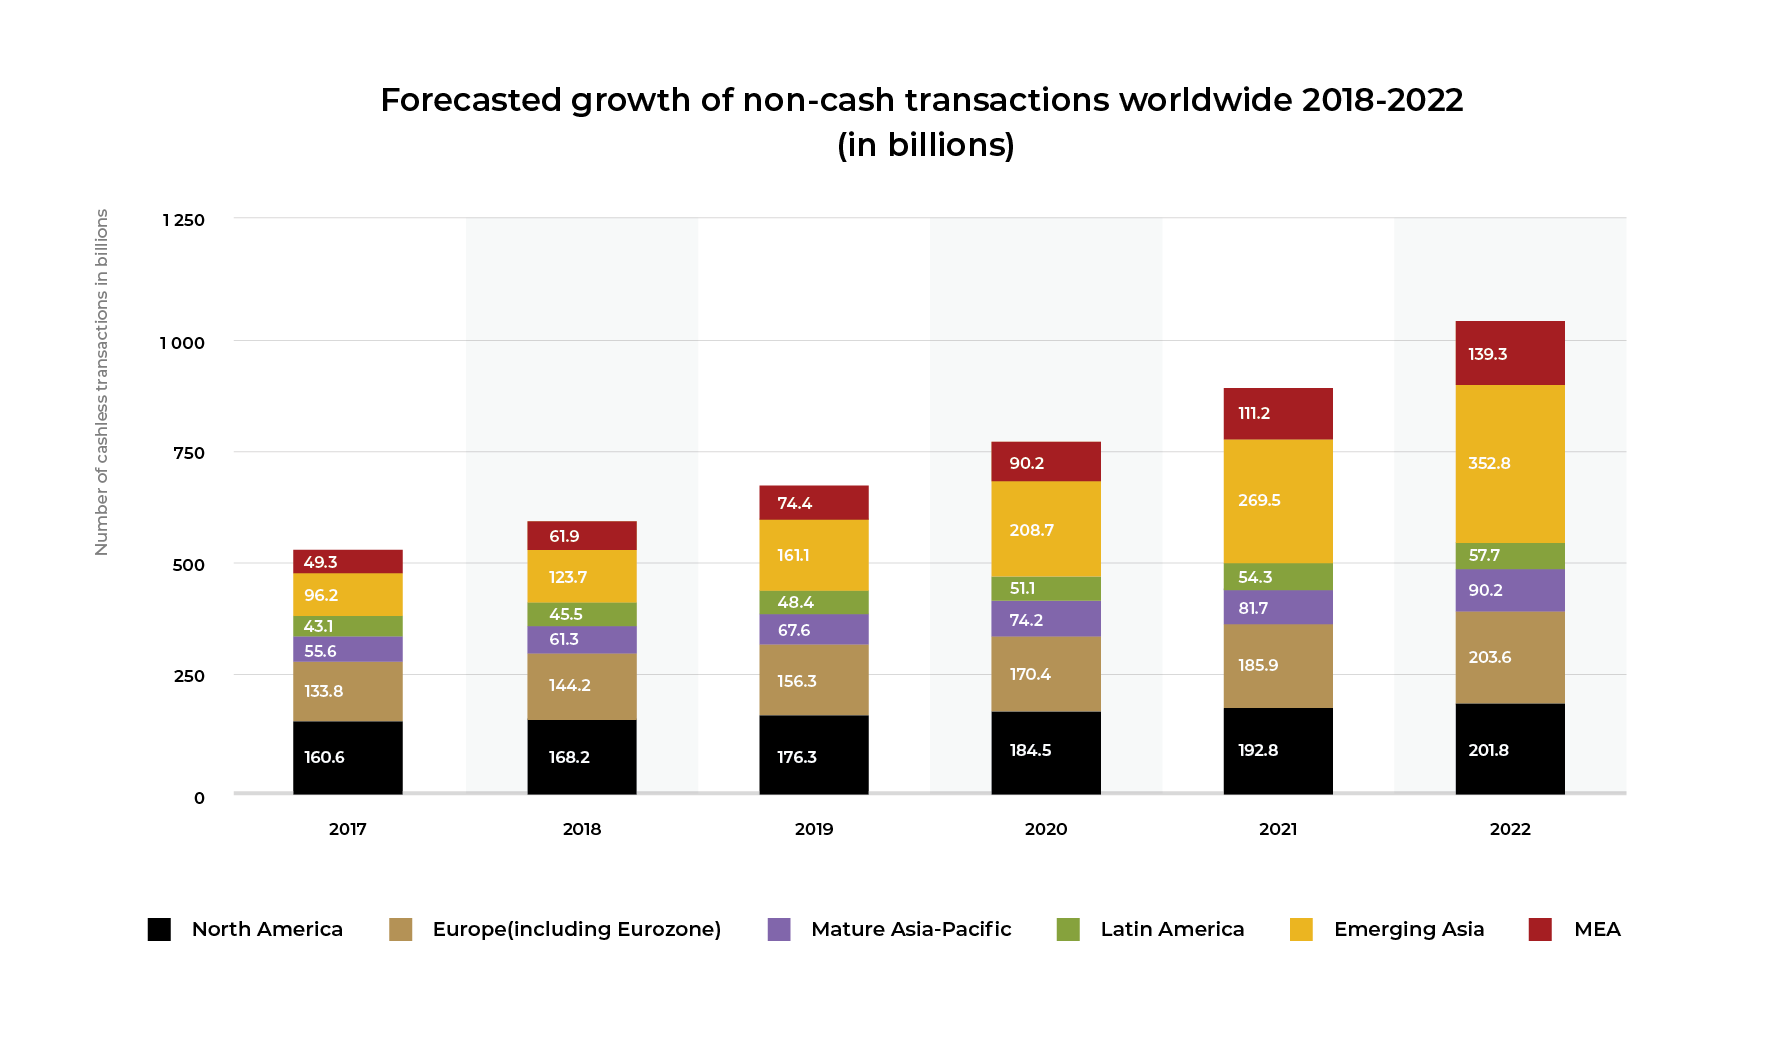 Infographic: the forecasted growth of non-cash transactions worldwide 2018-2022